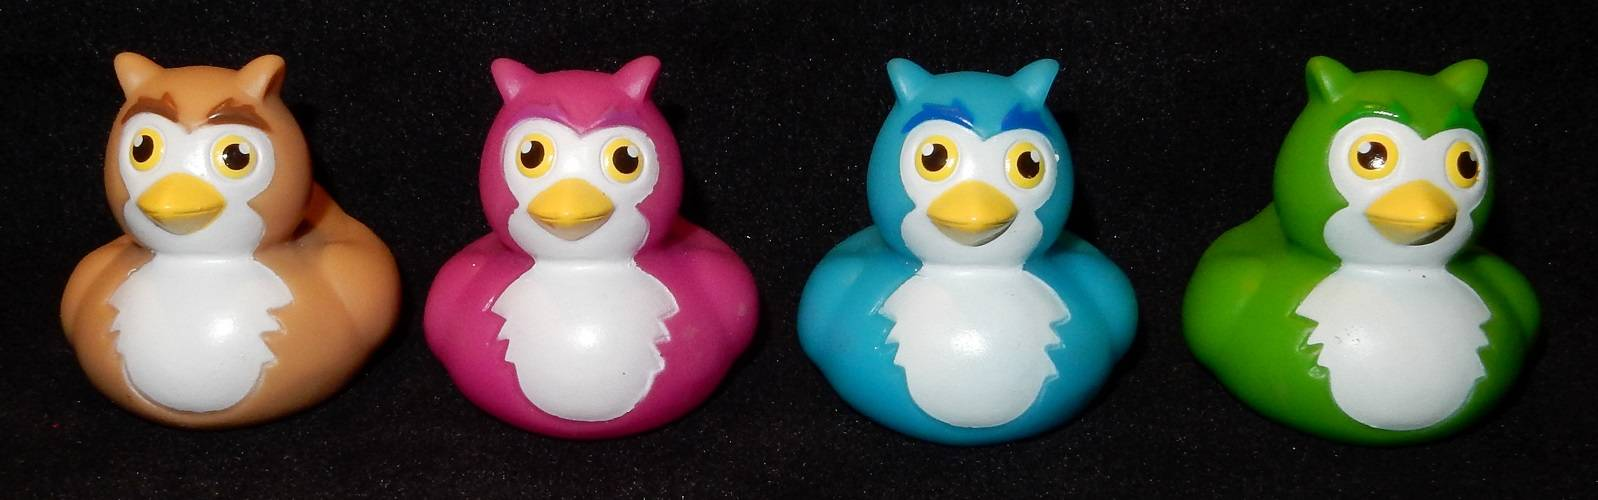 Owl ducks